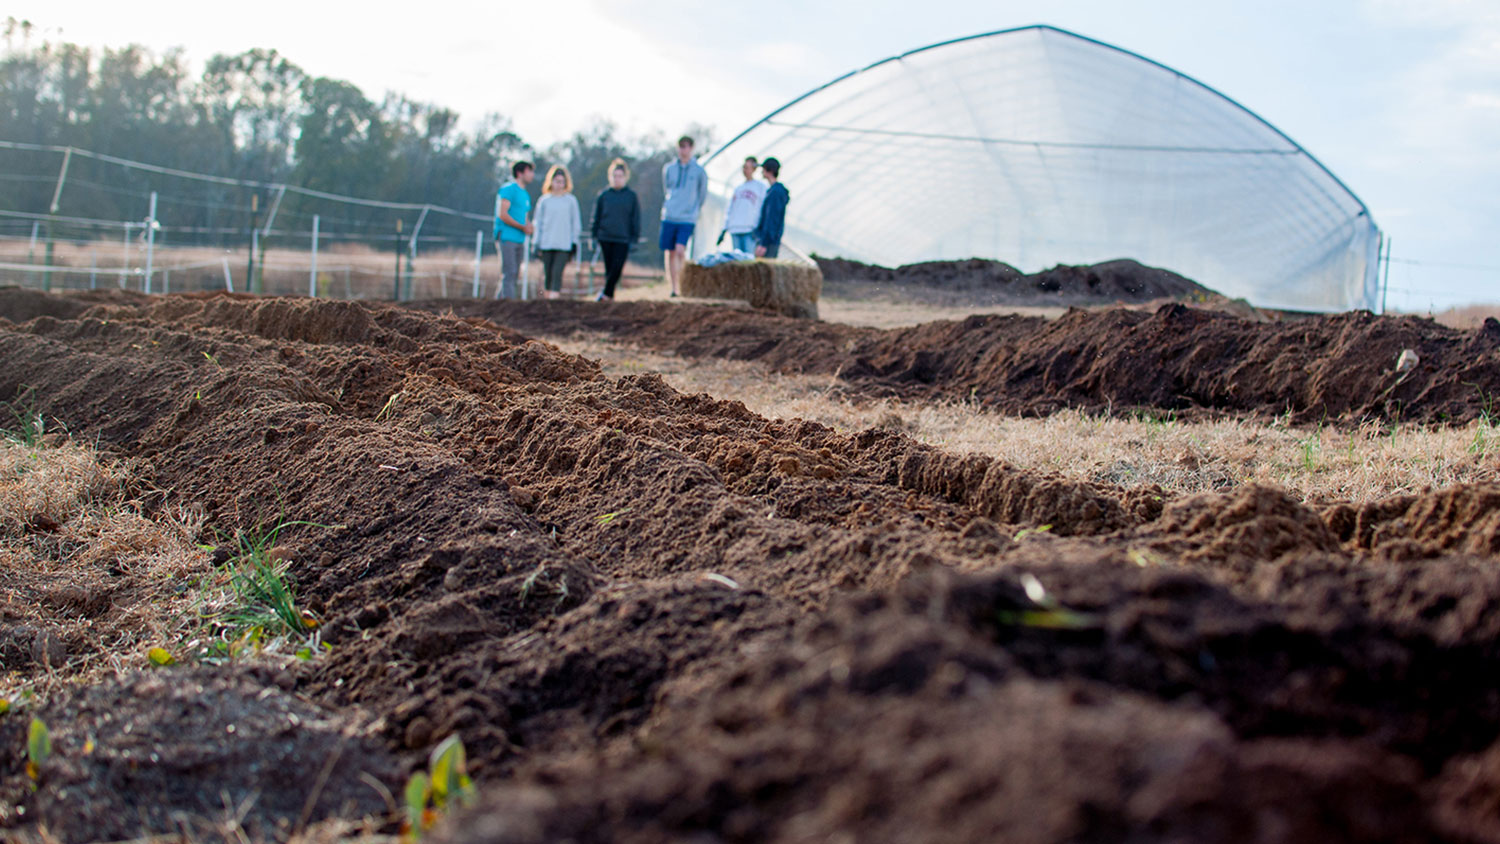 Long shot of a farm with students and greenhouse in the background